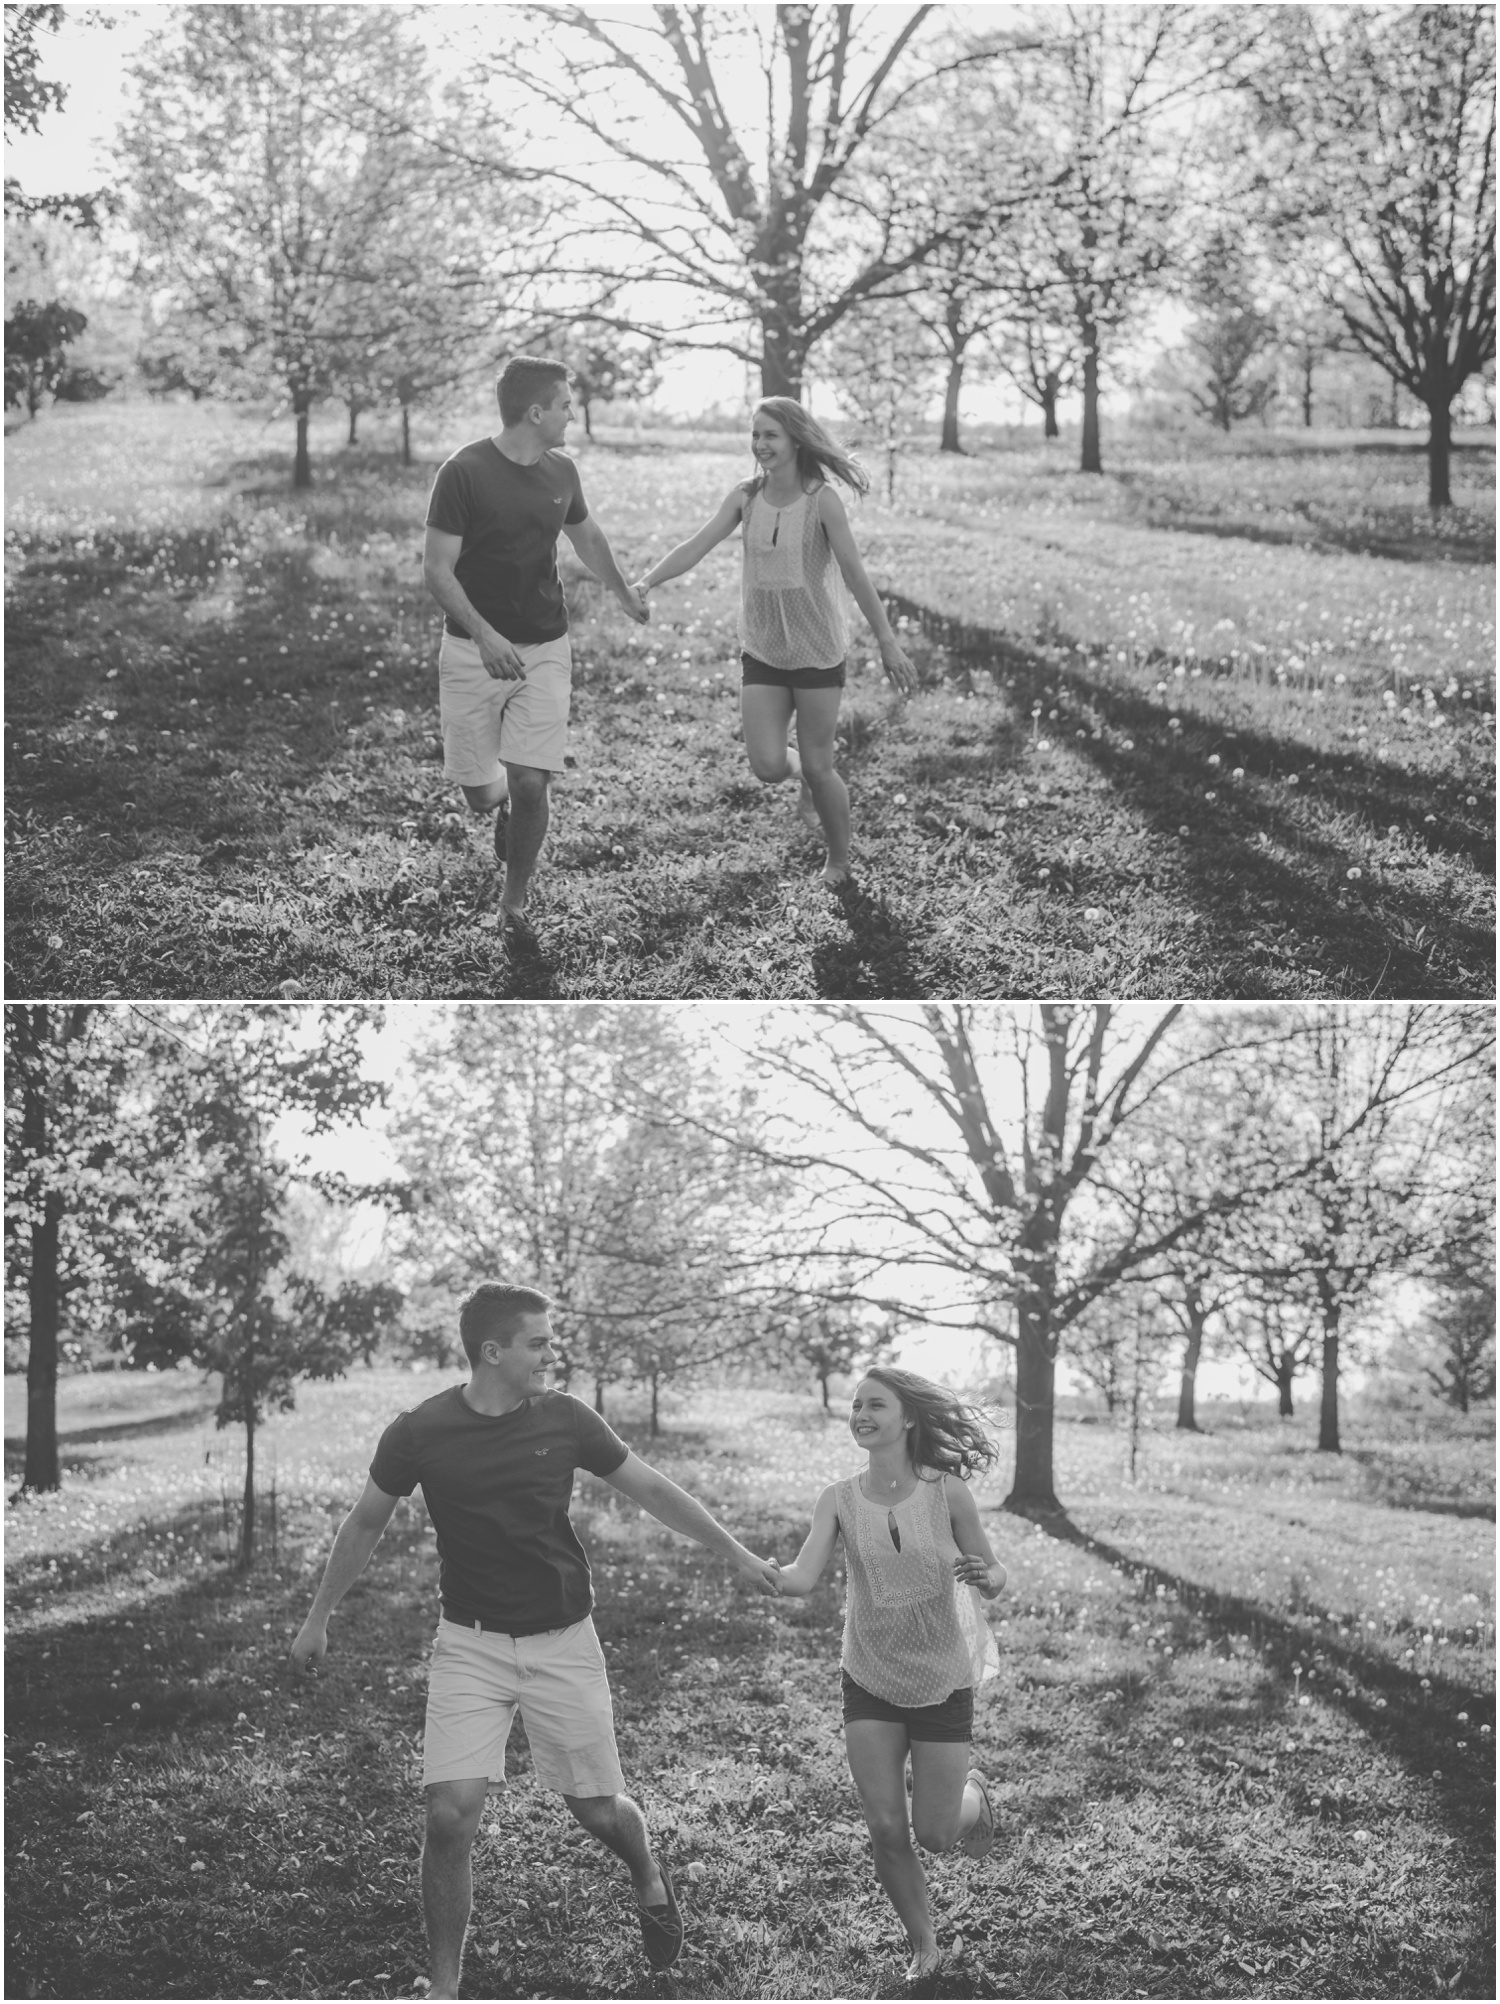 UW_Madison_Arboretum_Madison_WI_Engagement_Photos_Sydney_and_Tim_0015.jpg